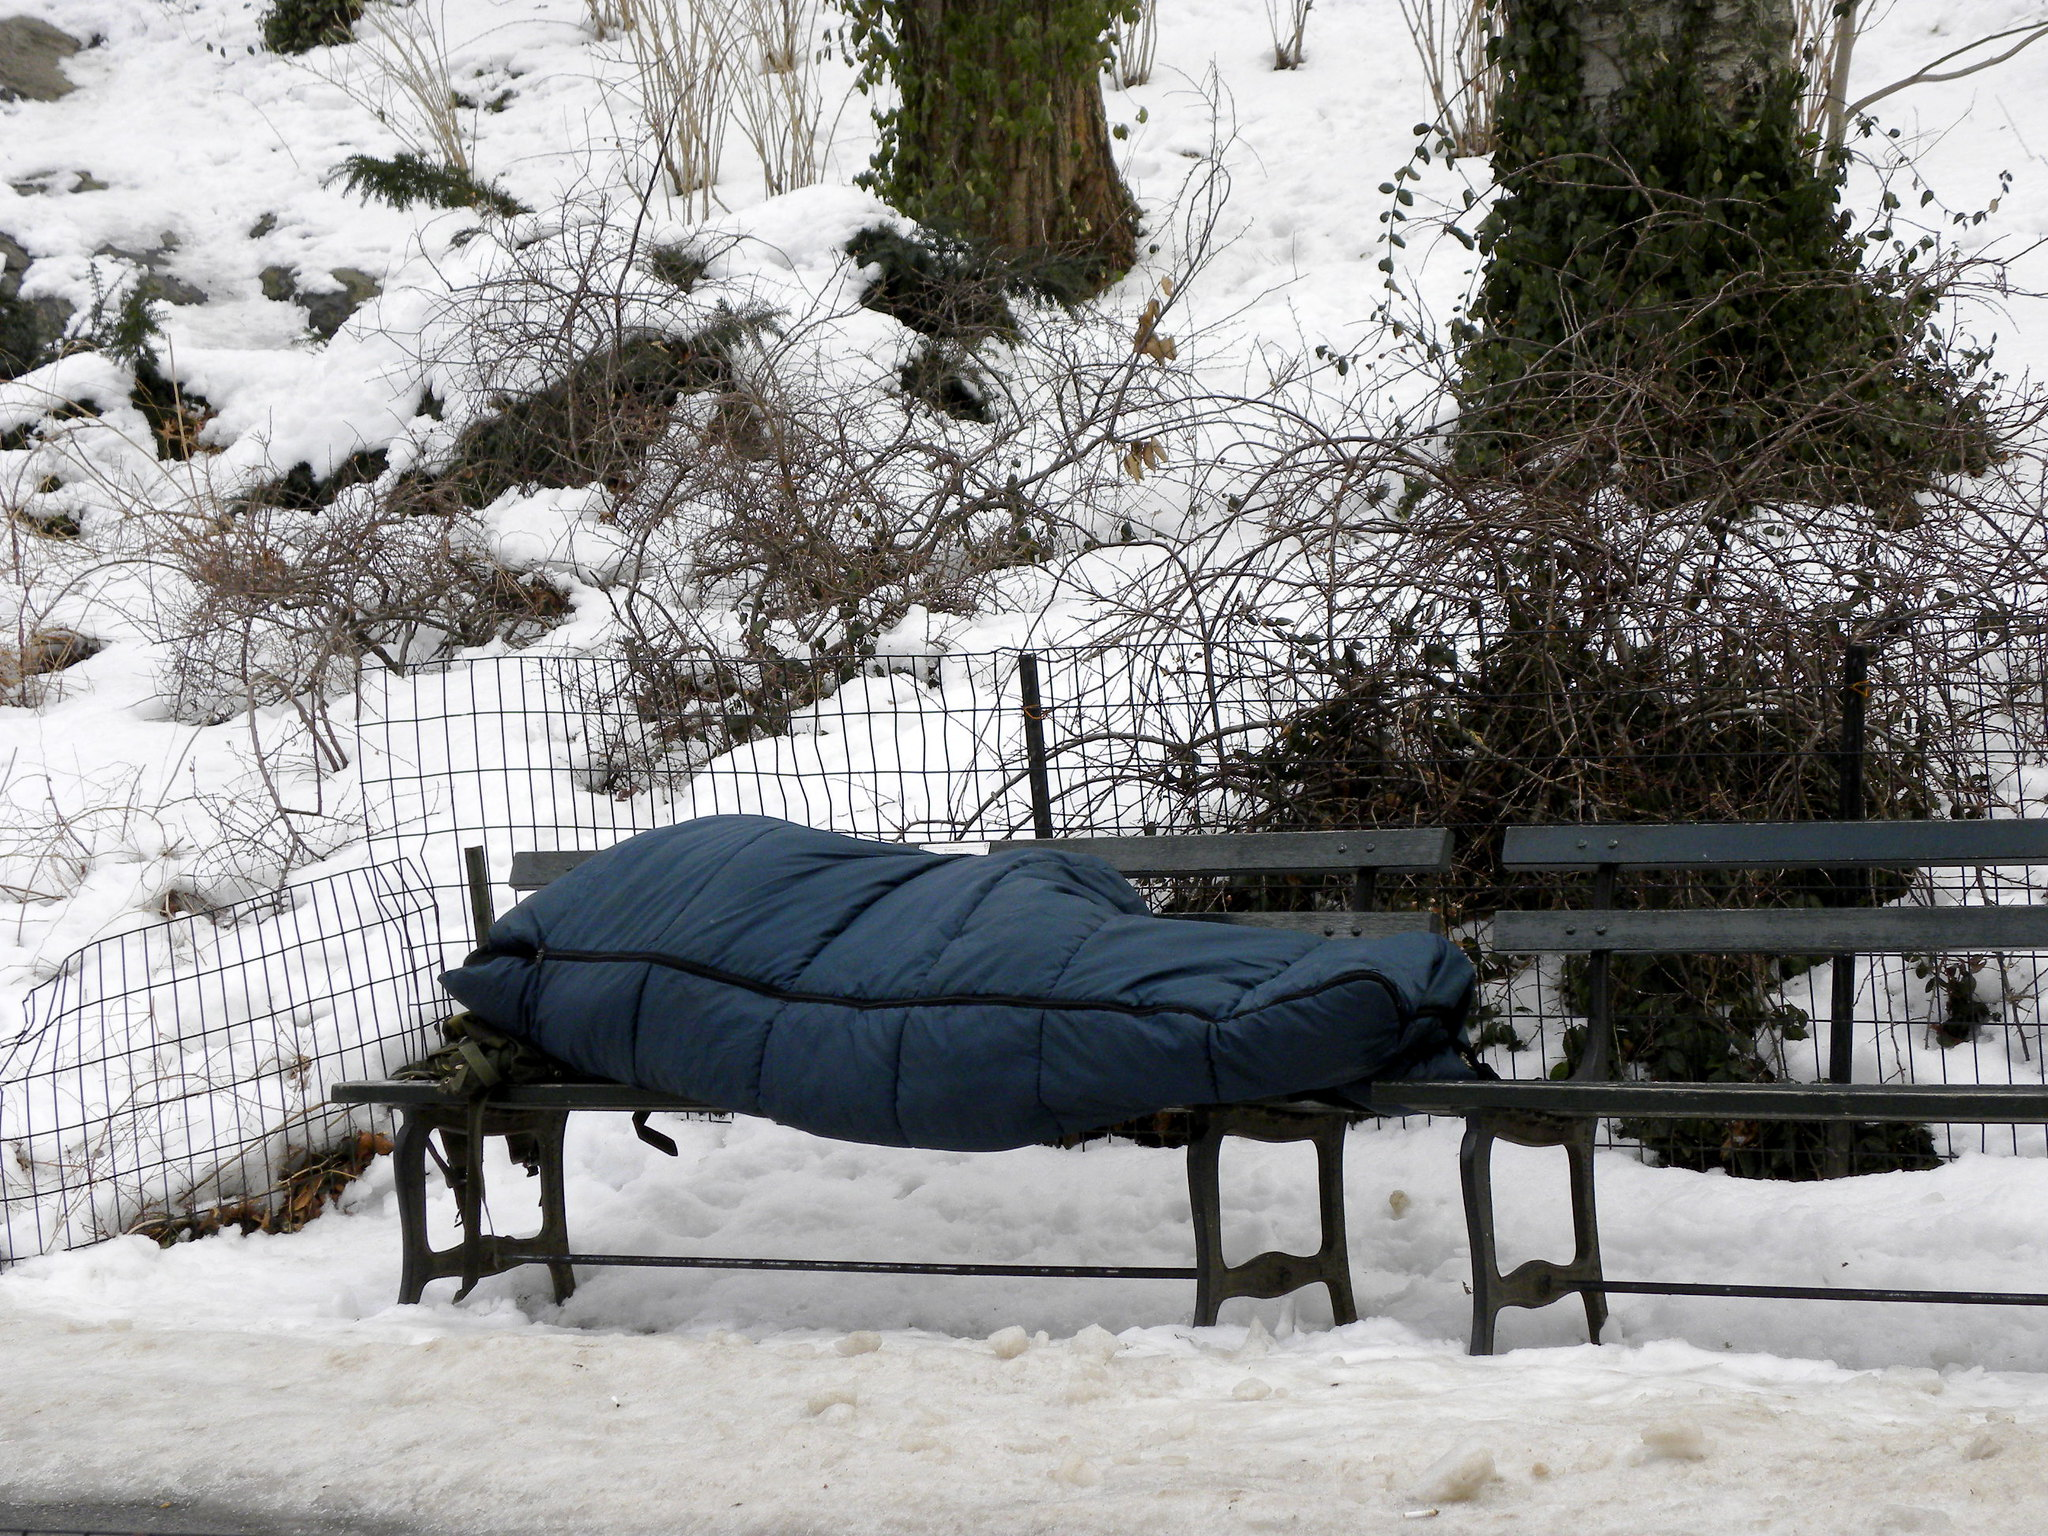 Boulder lowers thresholds for daytime winter sheltering